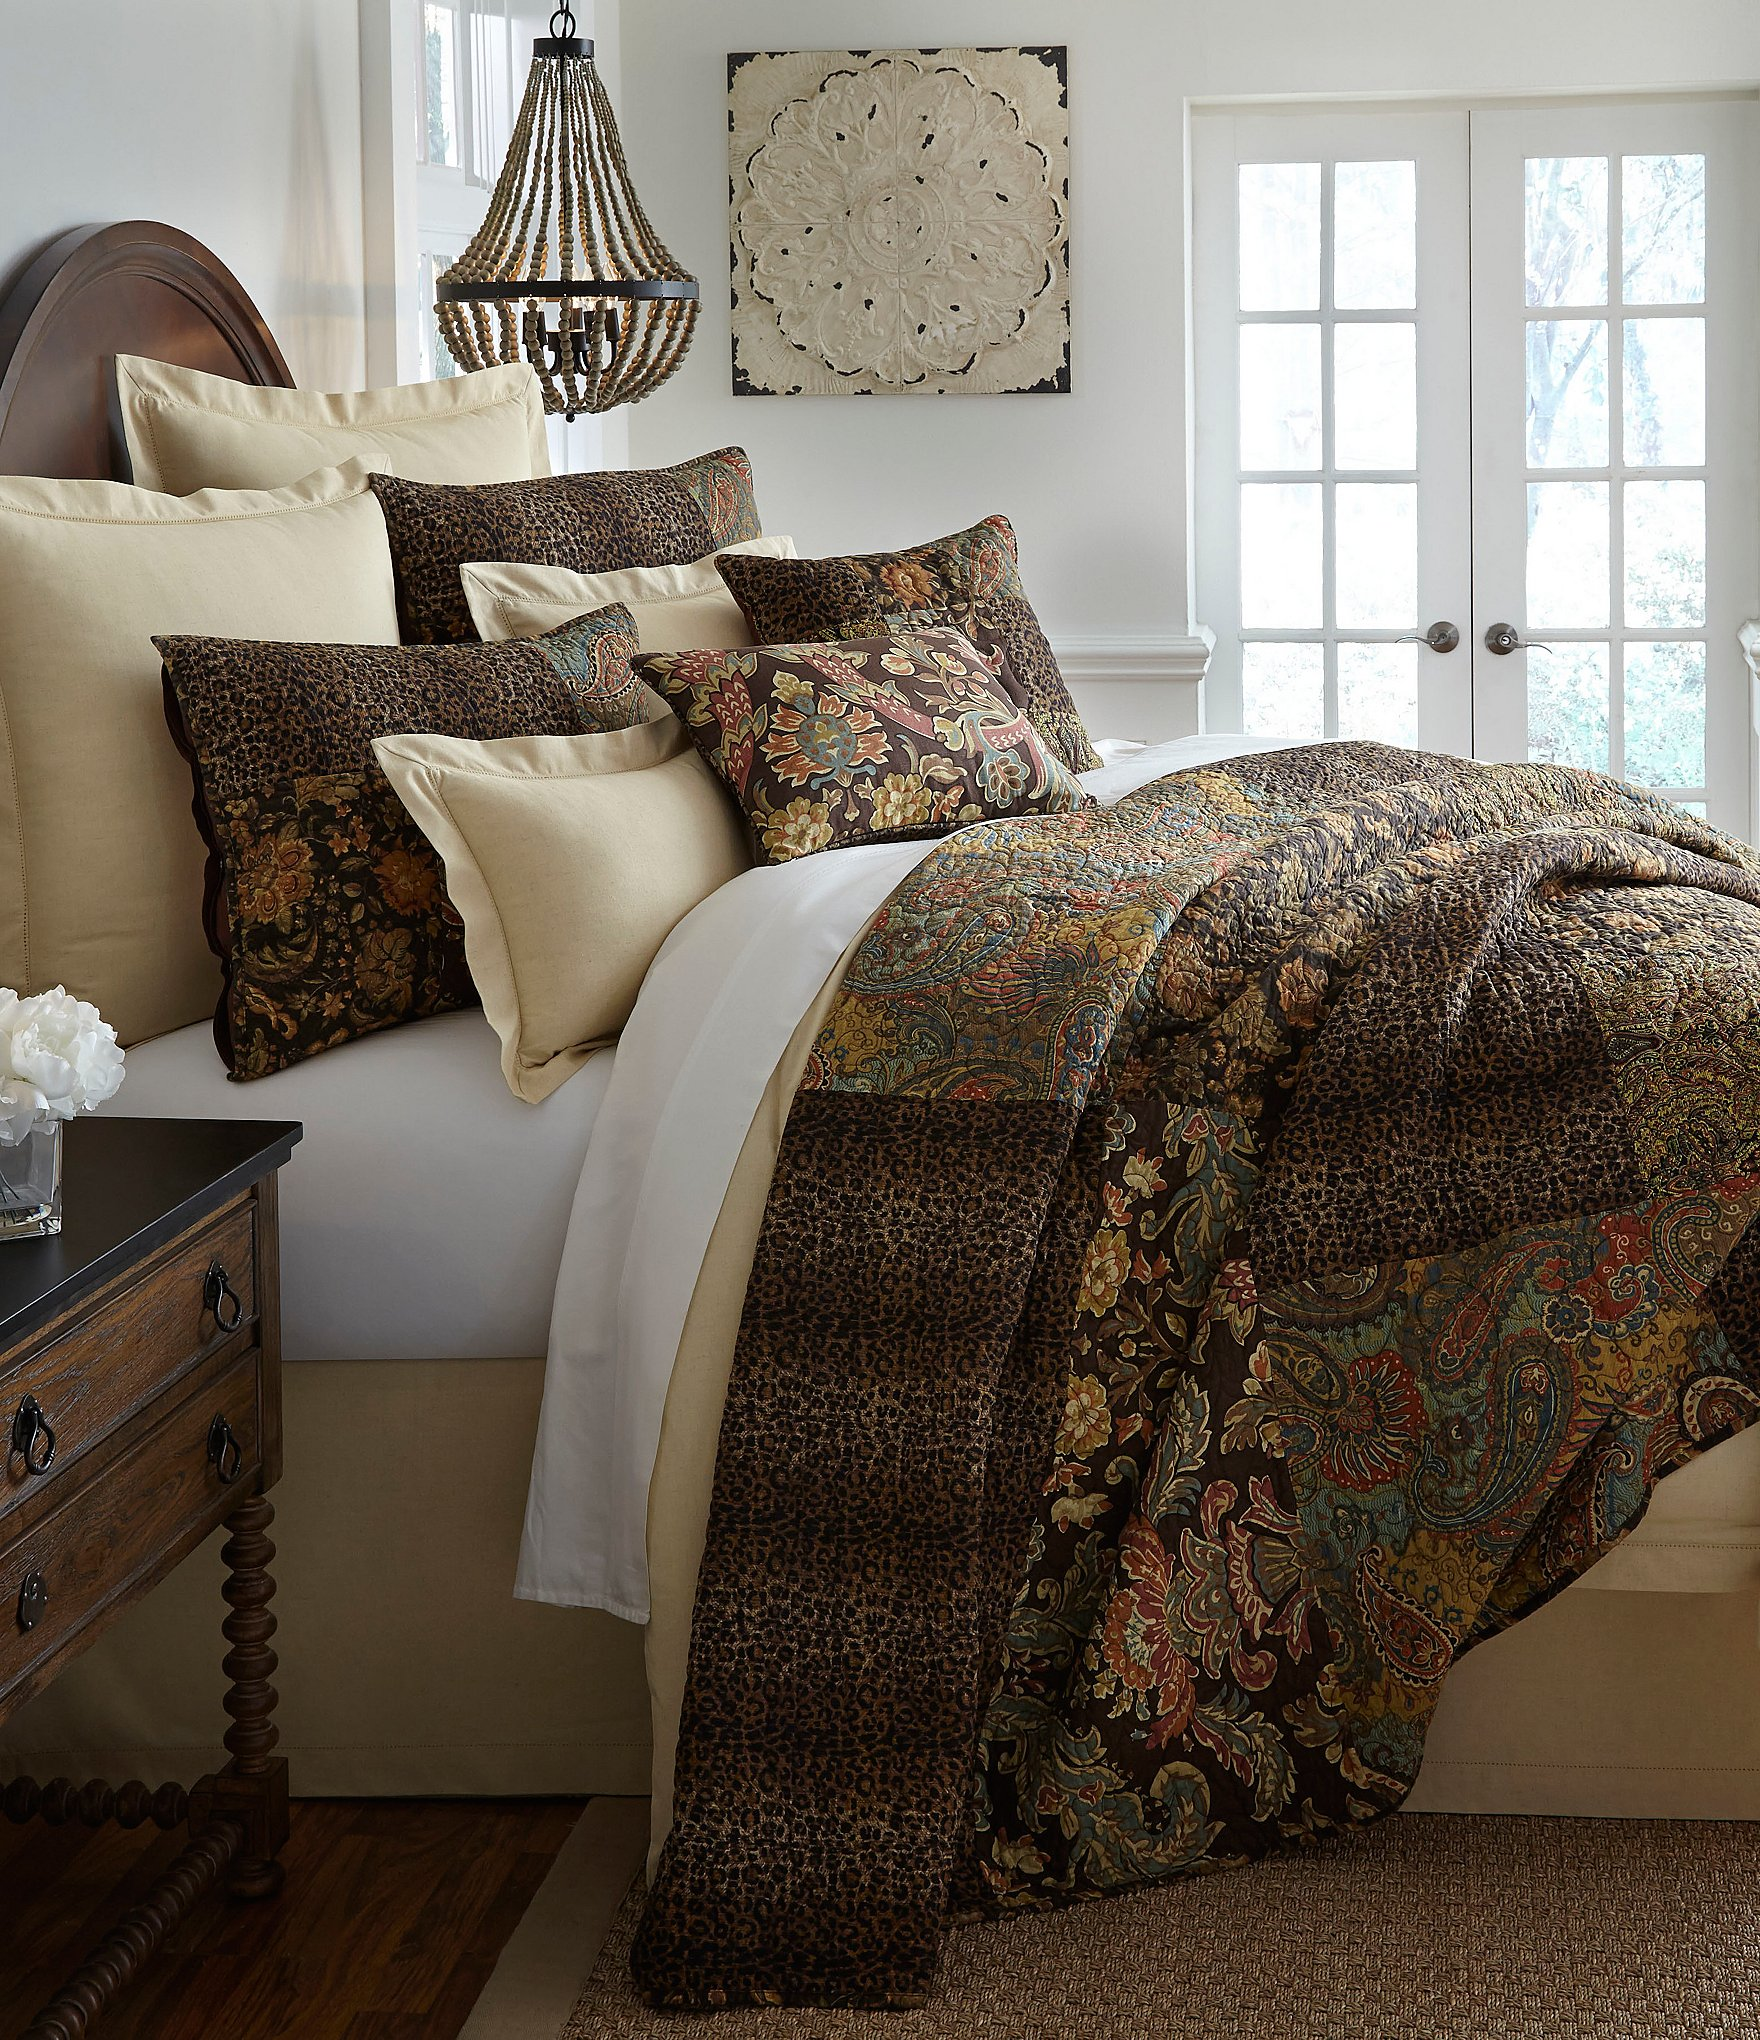 Bedding Bedding Collections Dillards - Brown pattern bedding double duvet set calvin klein bamboo bedding